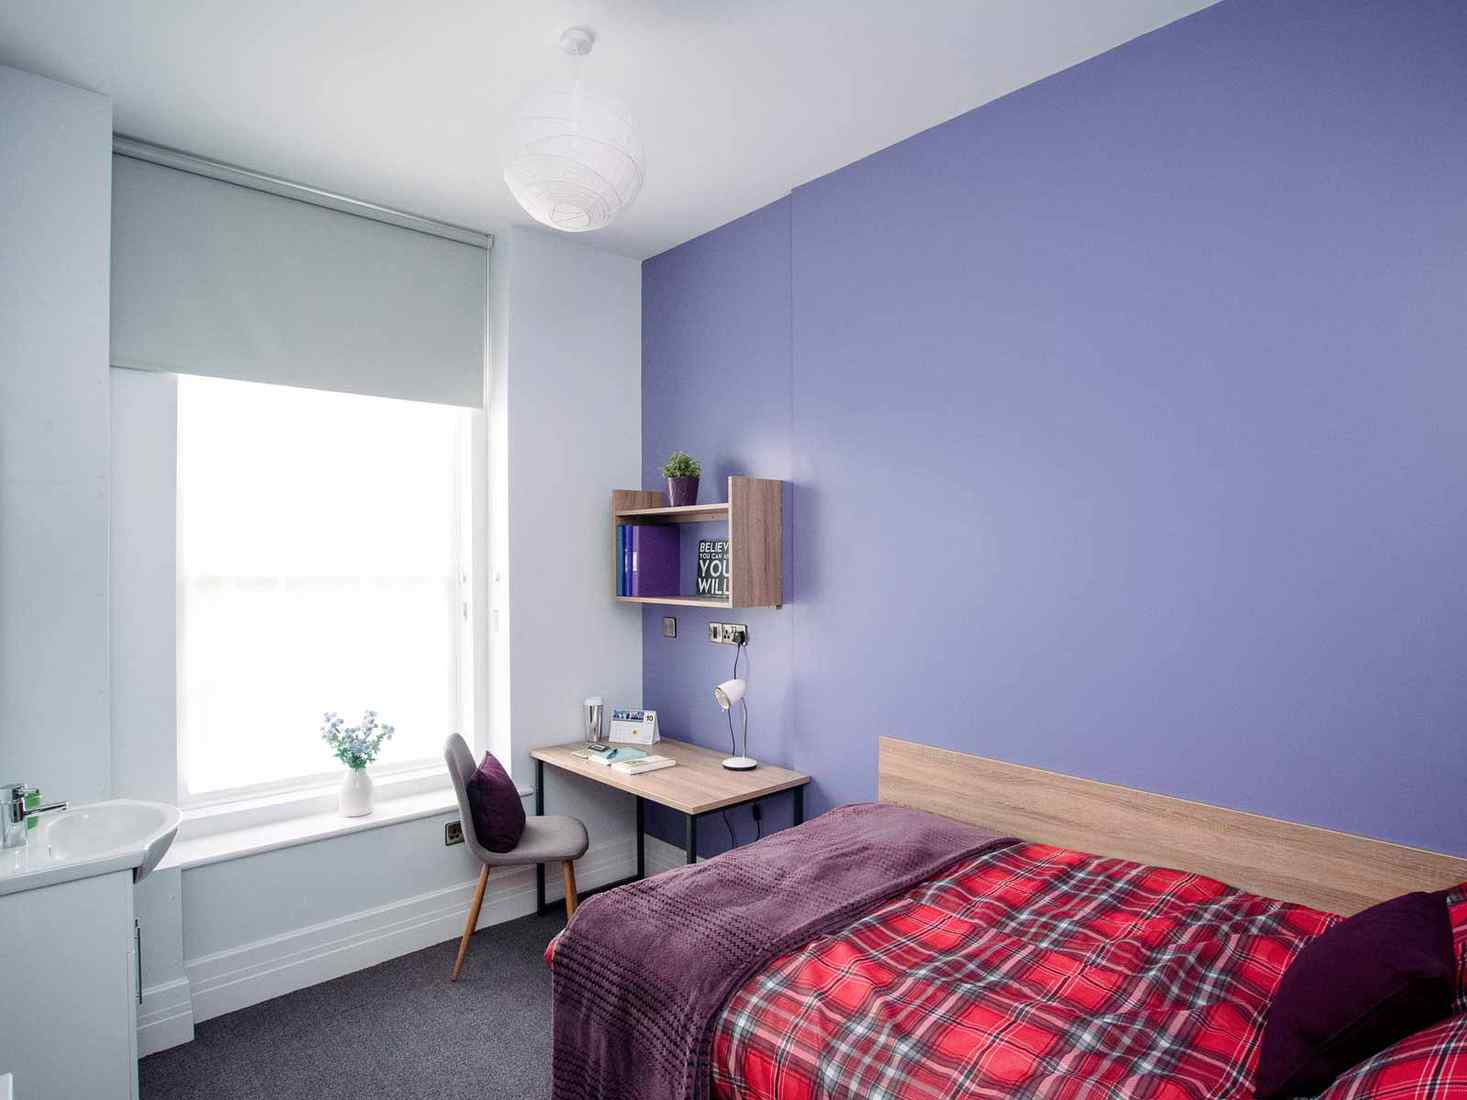 Student bedroom with double bed, desk and sink